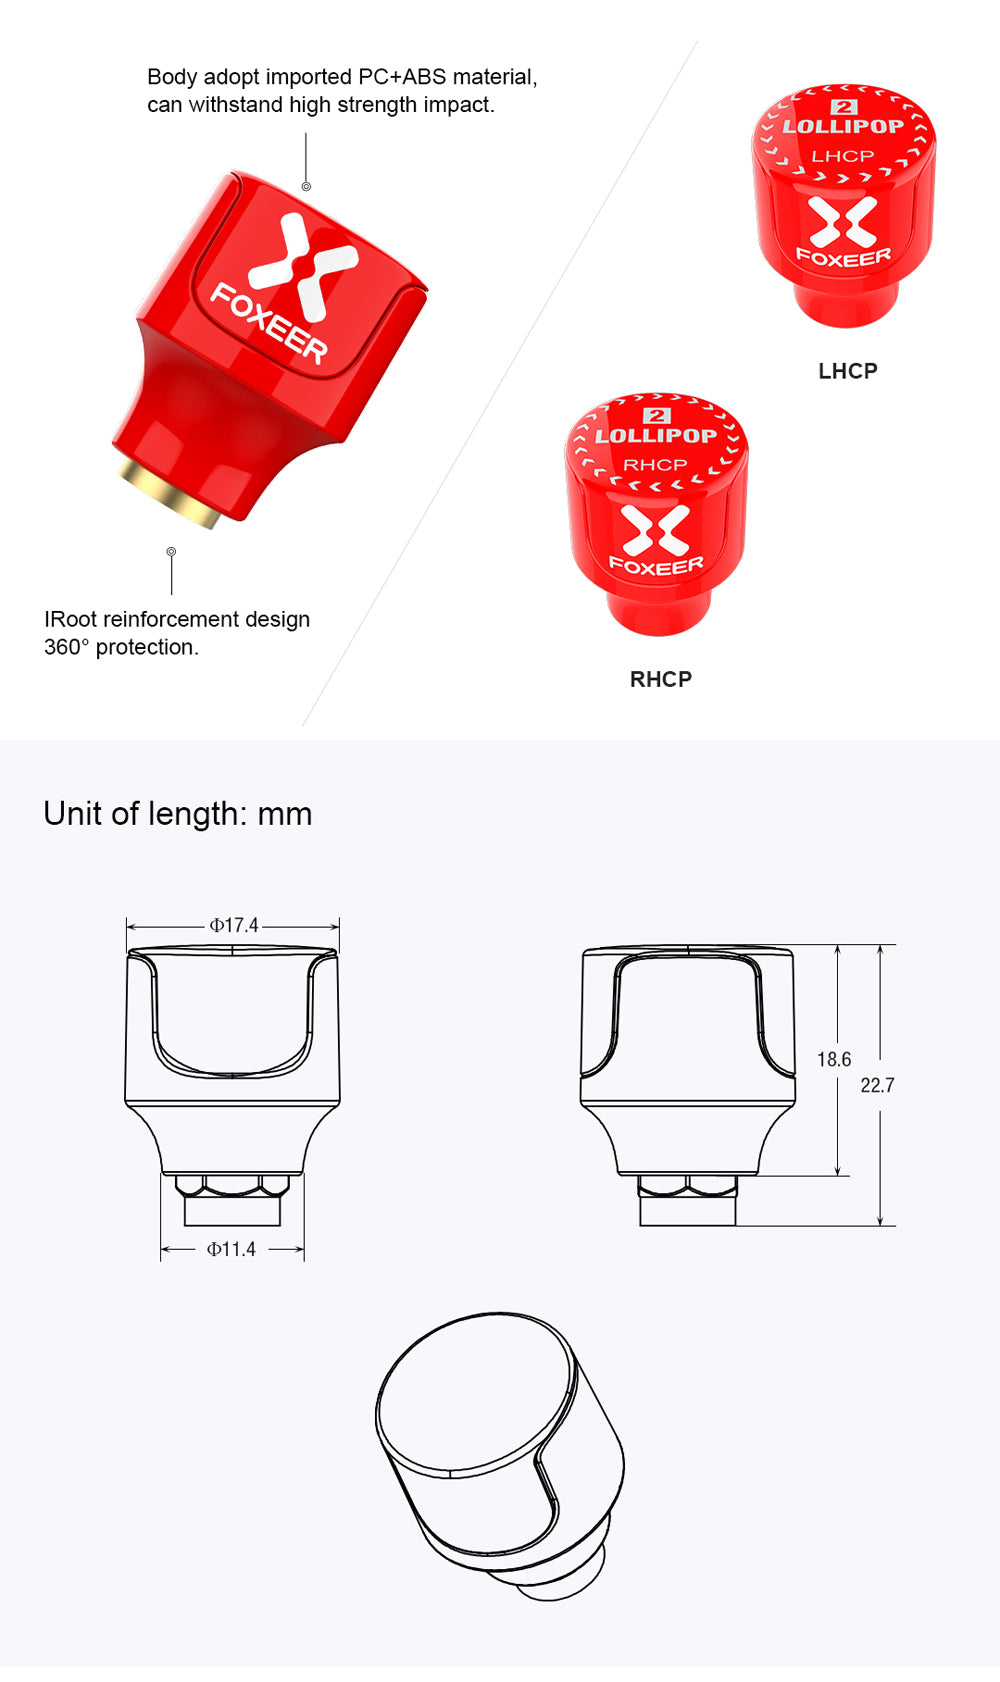 Foxeer Lollipop 2 Stubby 5.8G Omni Antenna(2pcs) RHCP red